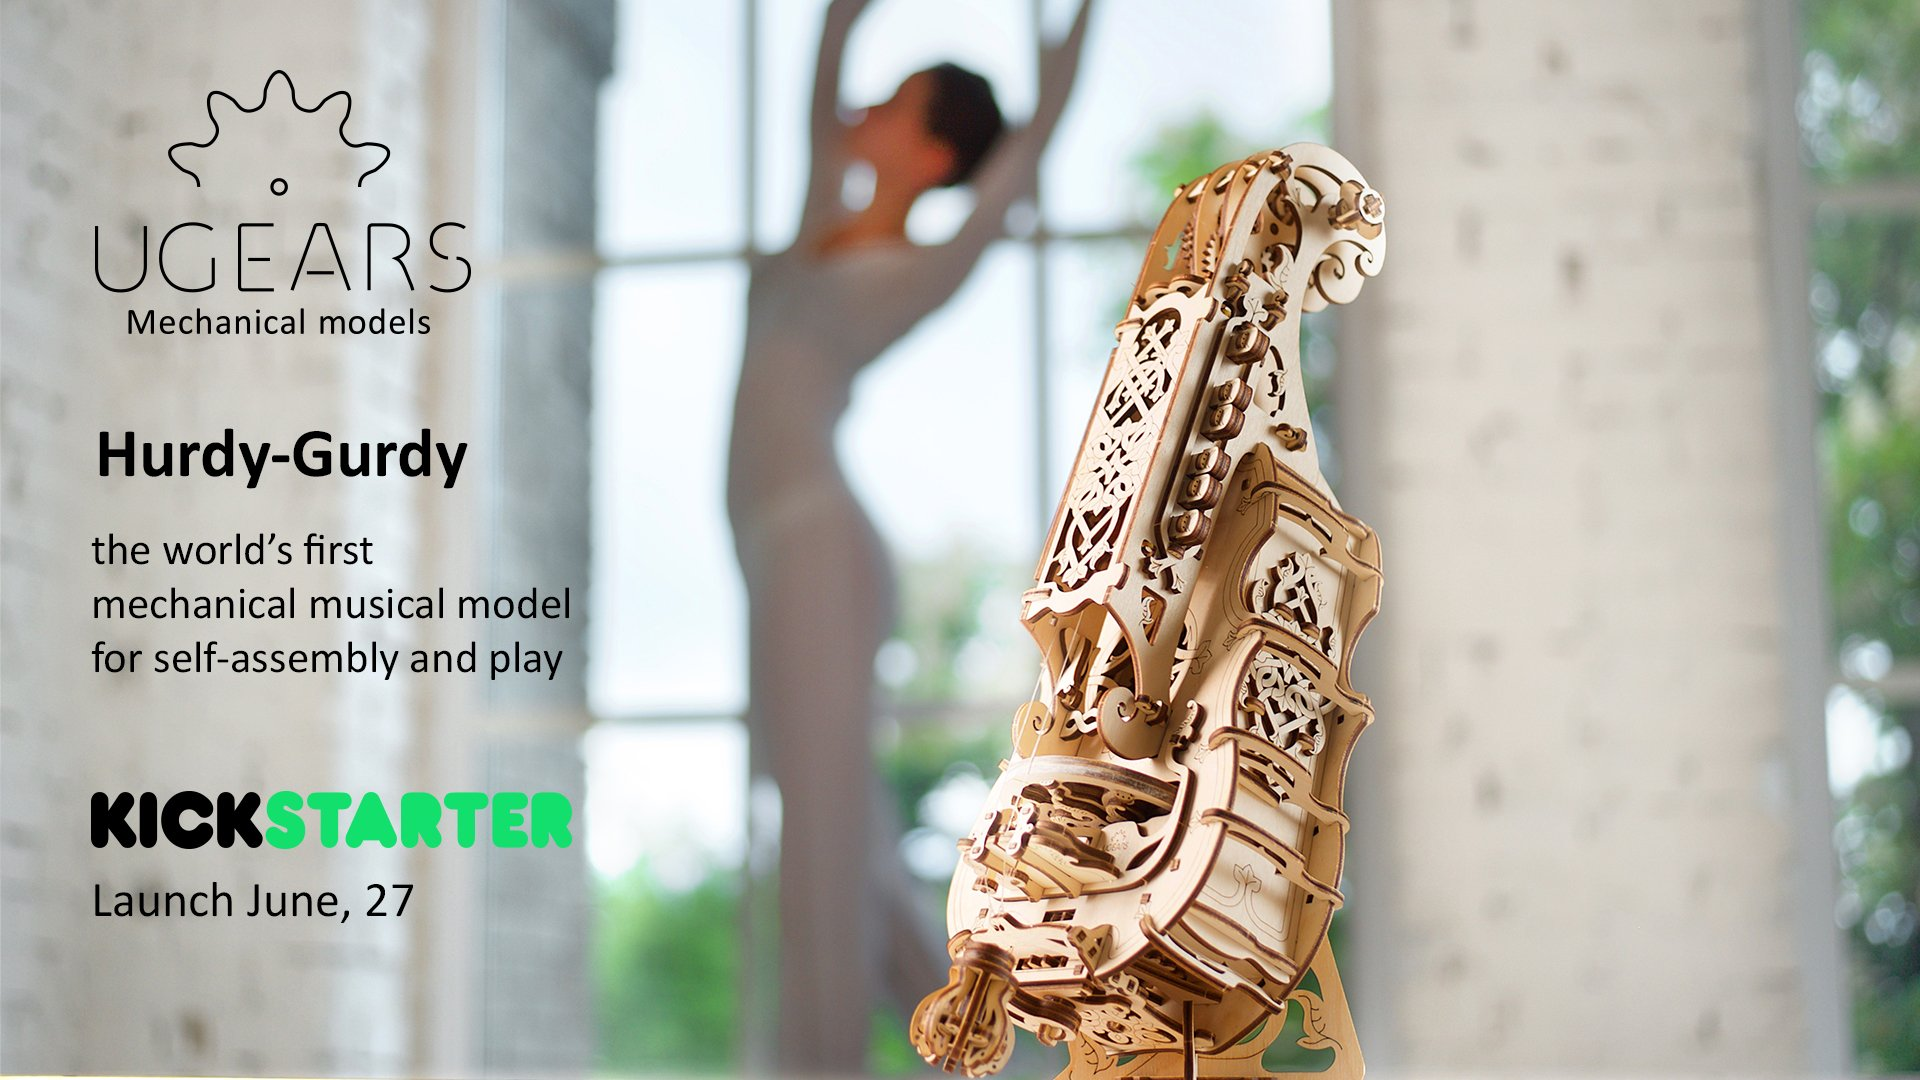 UGears Mechanical Models 3-D Wooden Puzzle - Mechanical Hurdy-Gurdy Musical Instrument by UGEARS